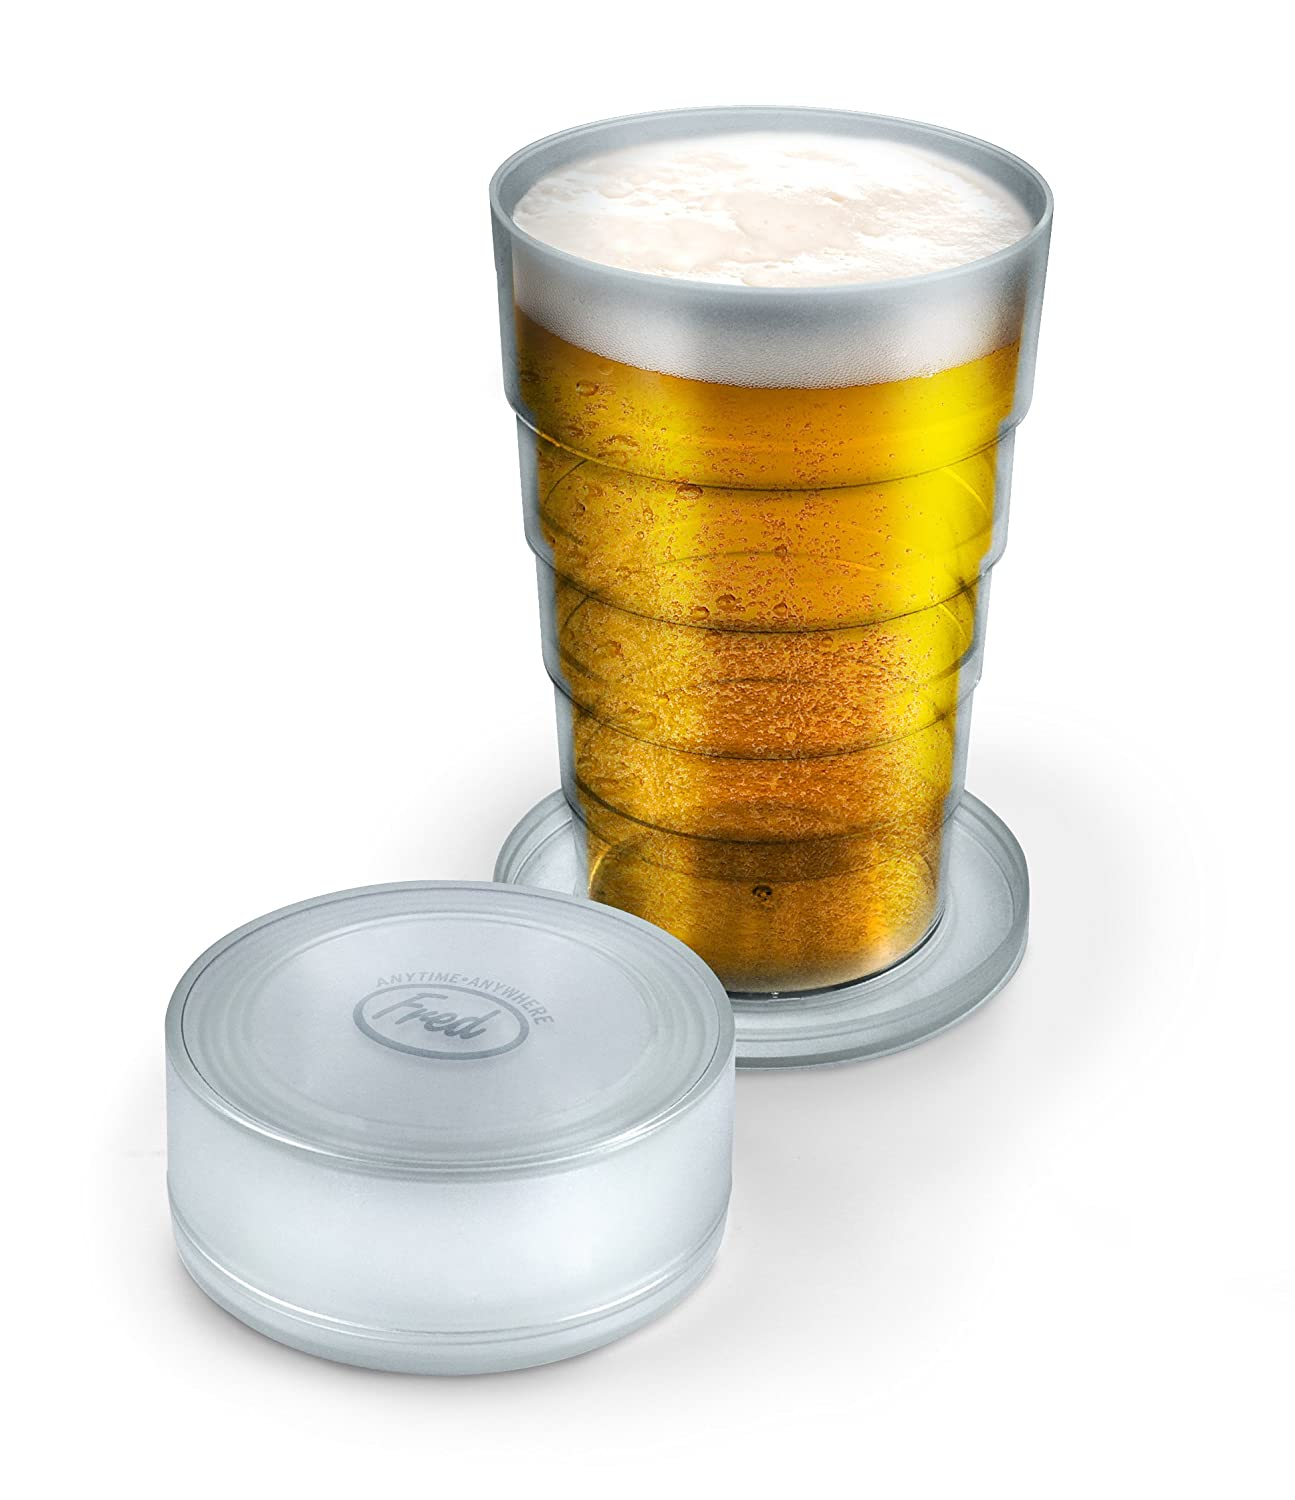 Fred PORT-A-PINT Collapsible Beer Glass, Clear PORTA